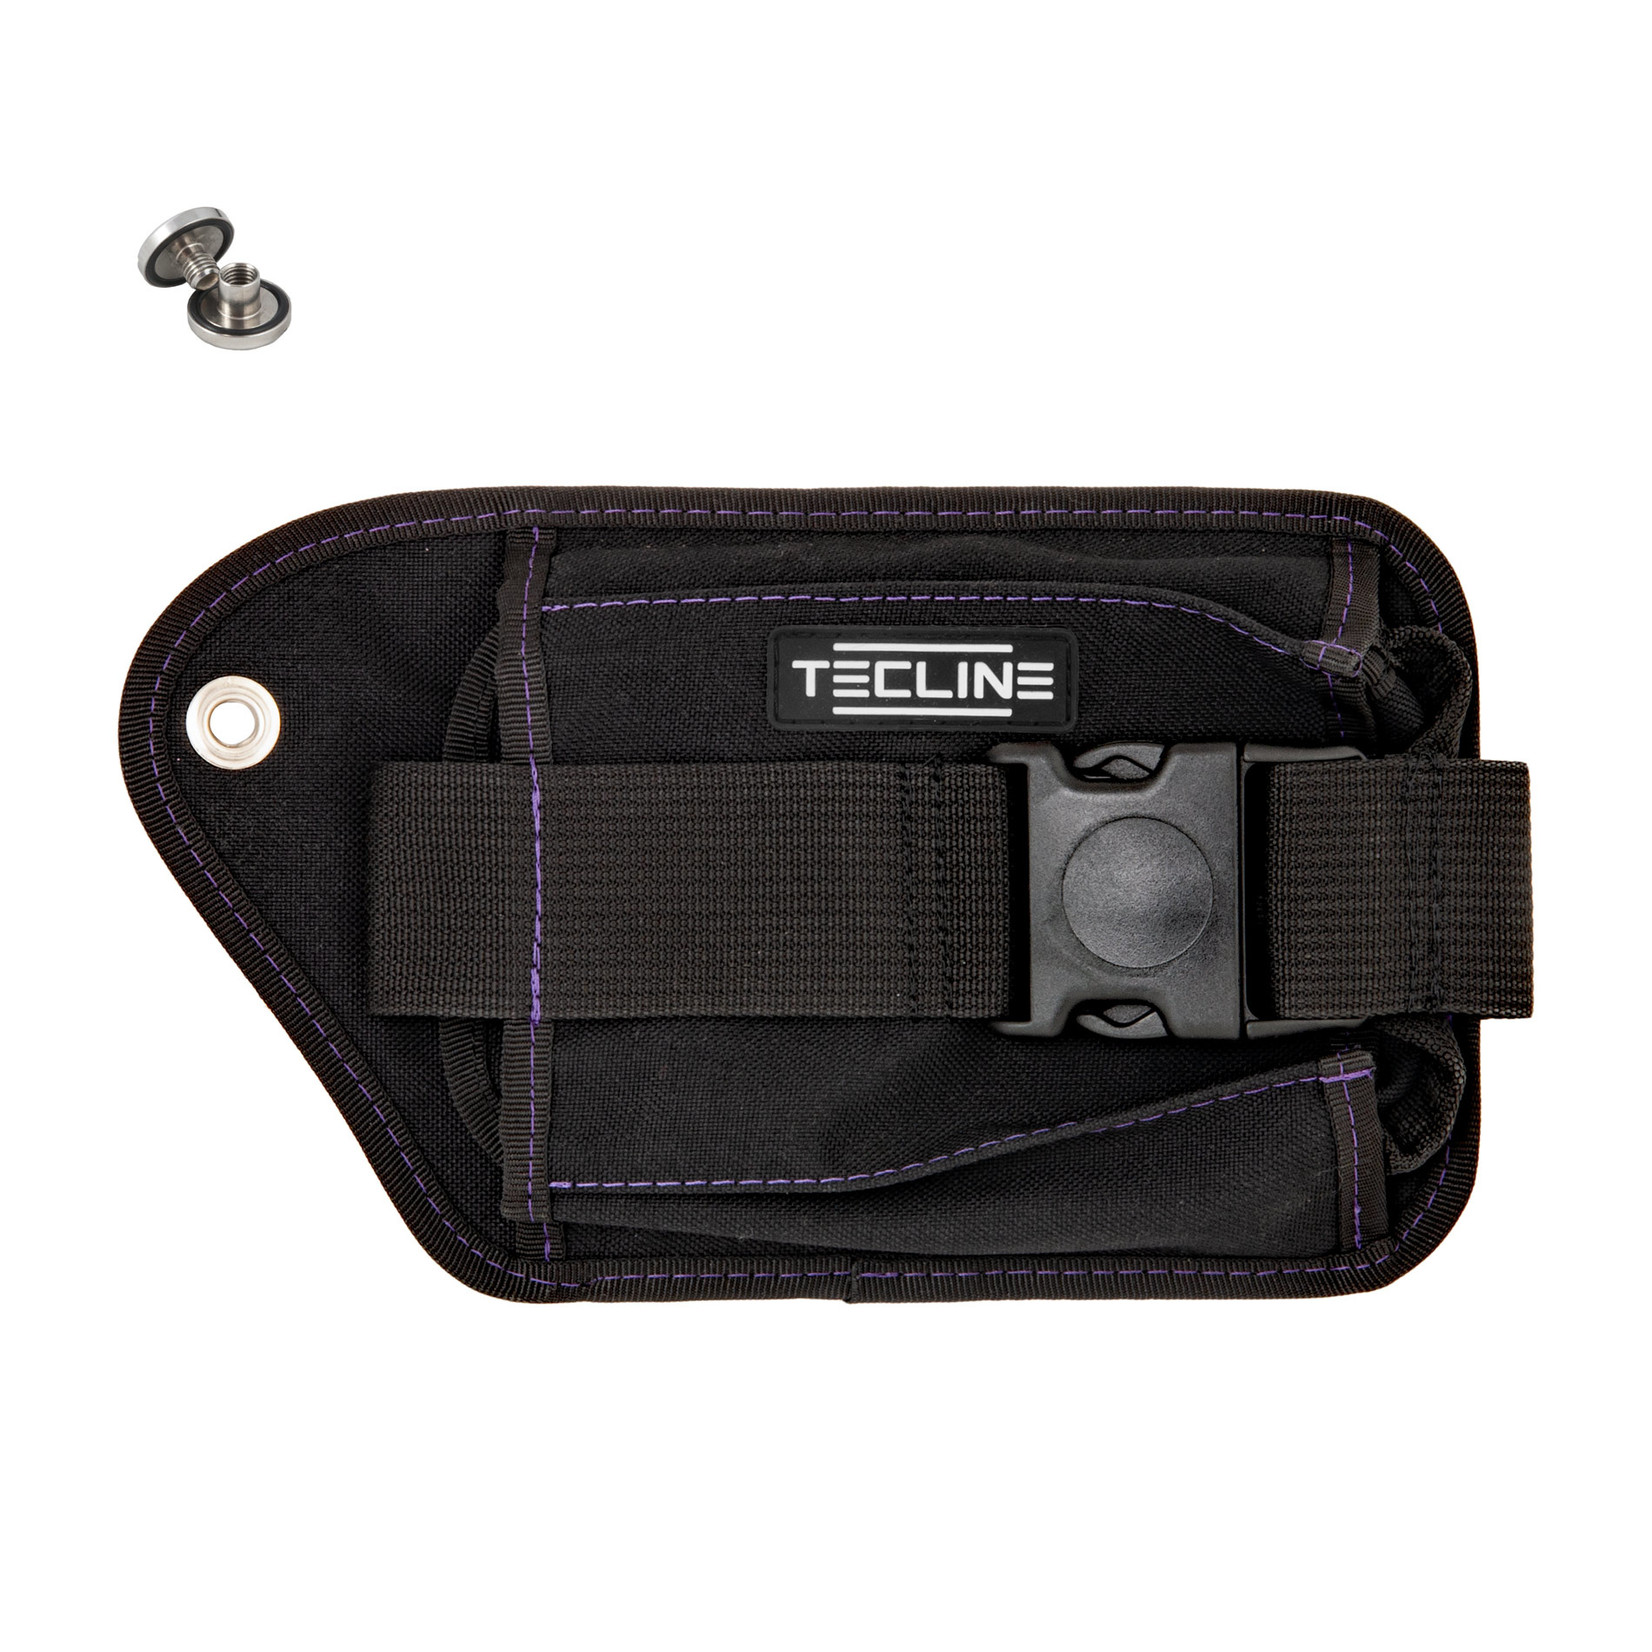 Tecline Double weight pocket LADY, right - Tecline